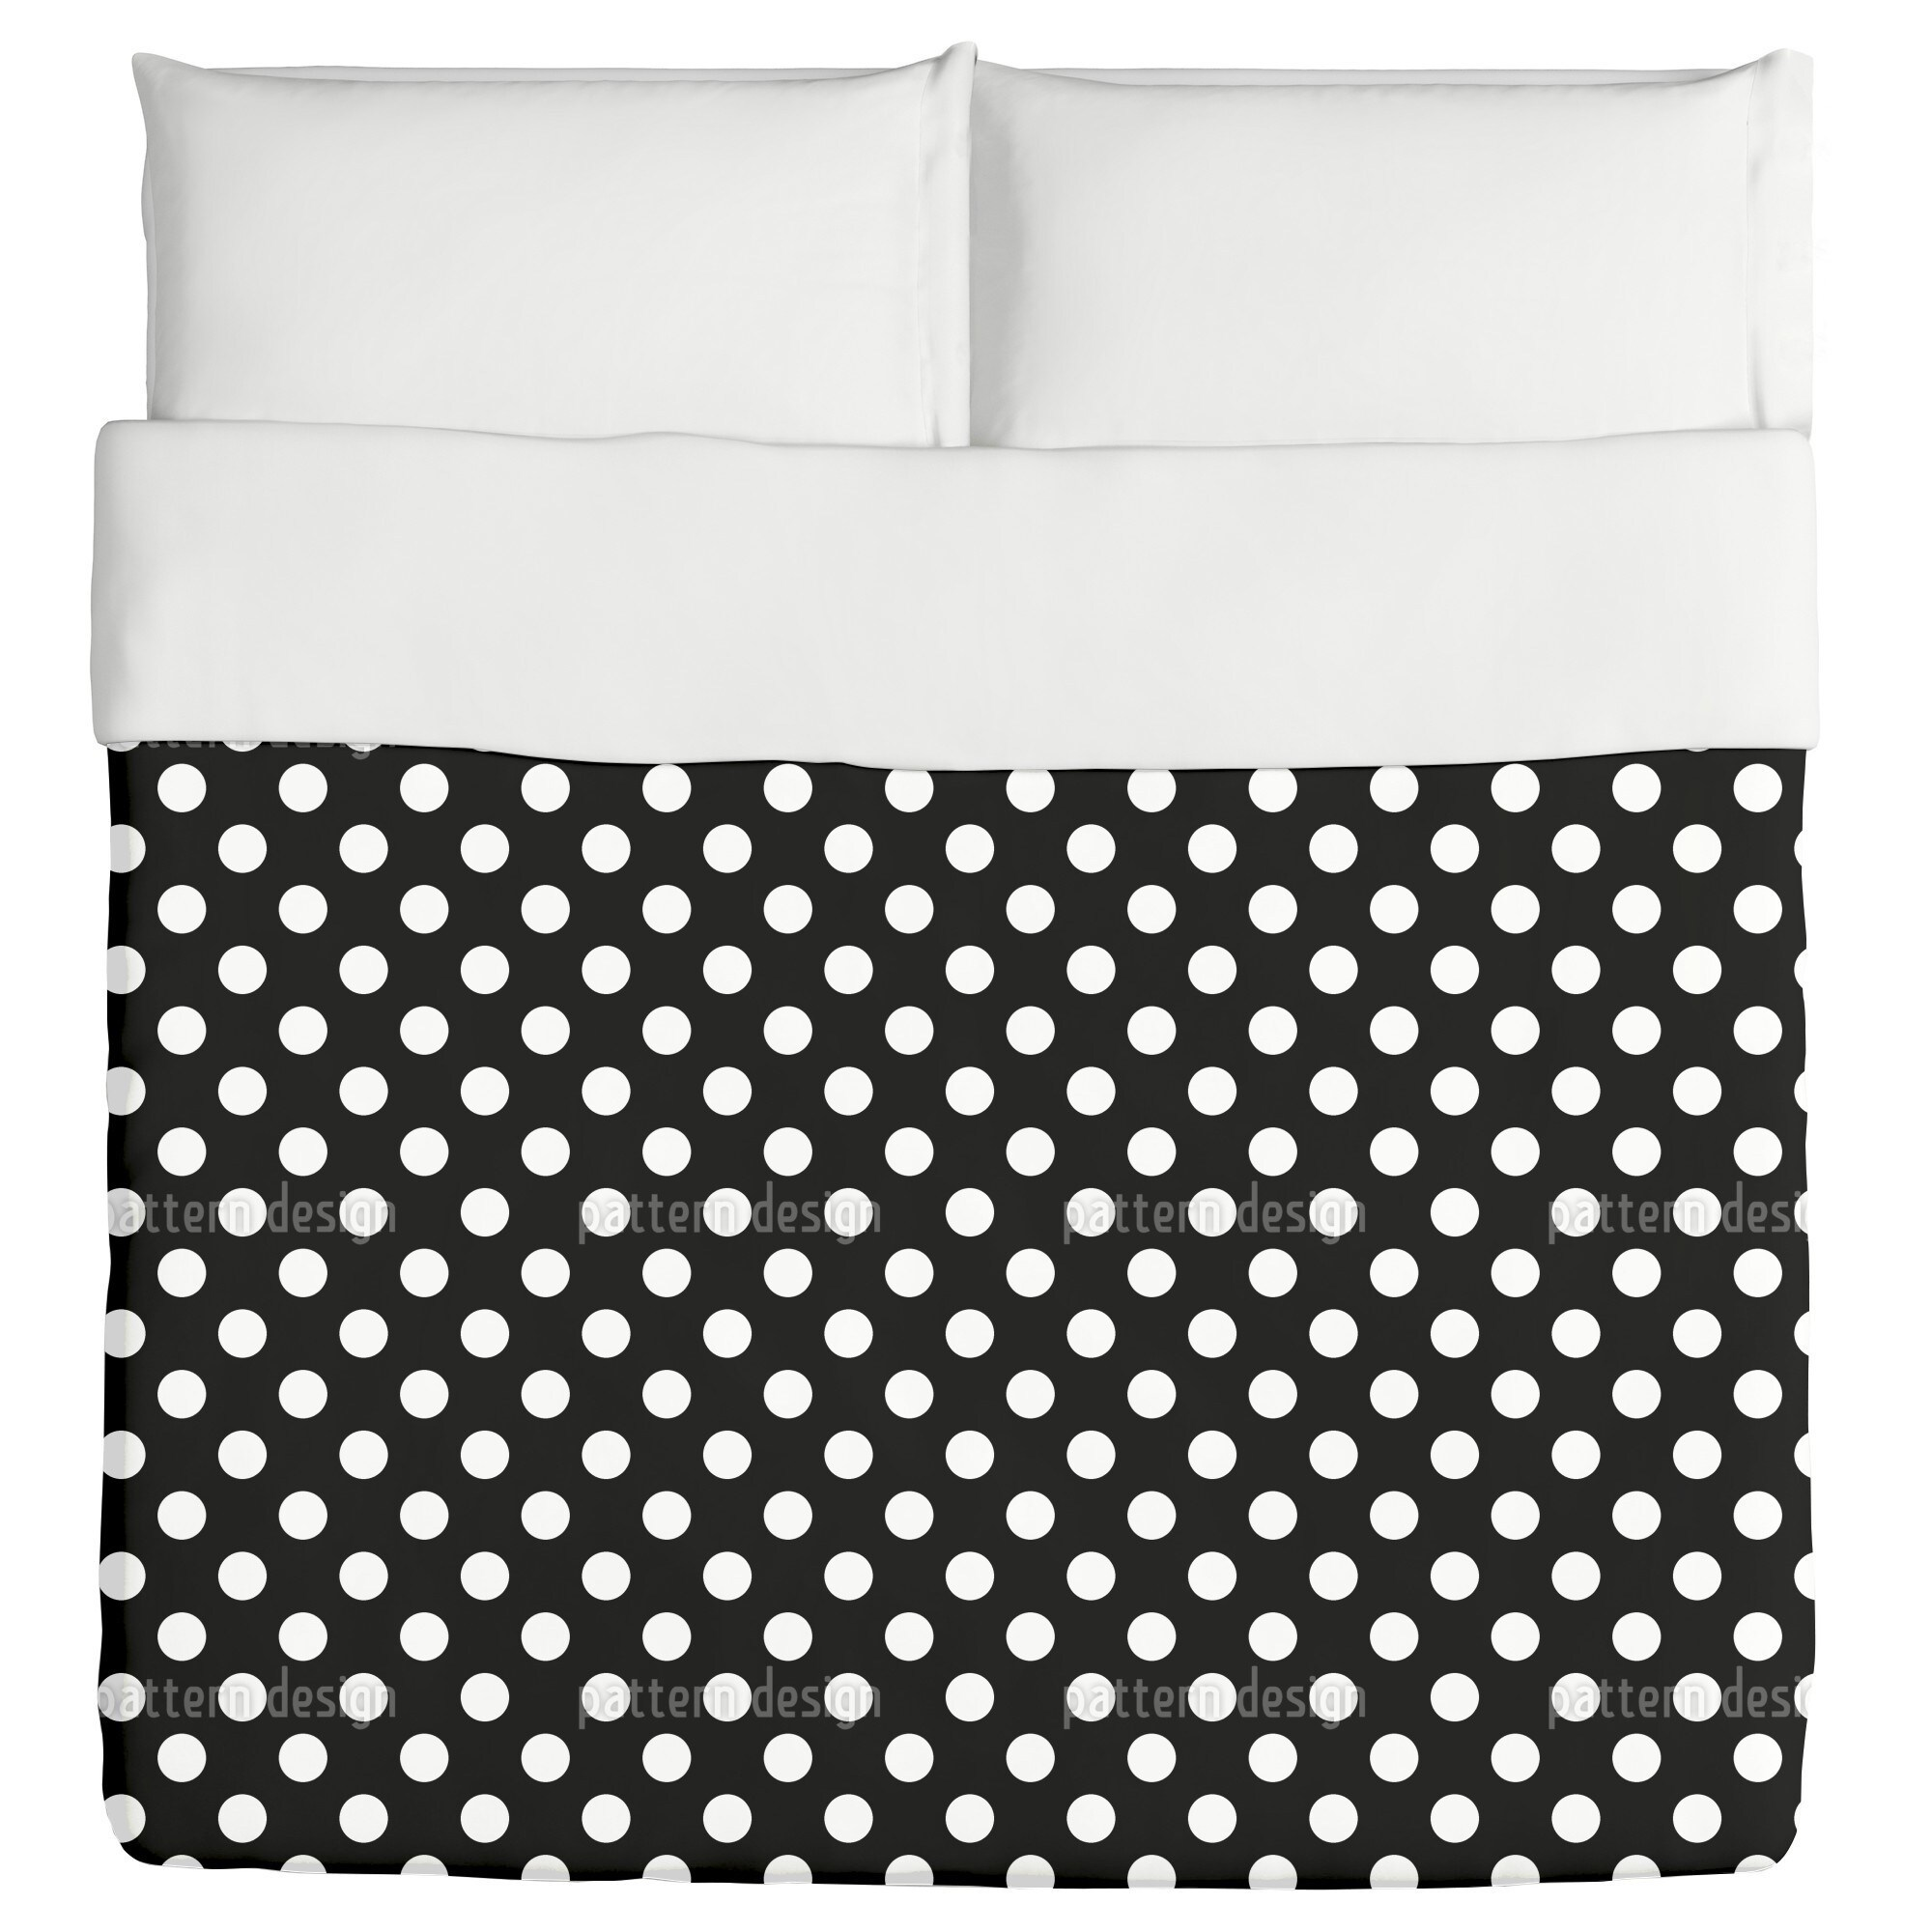 Uneekee Big Polka Dots Duvet Cover (Queen), Multi (Polyes...